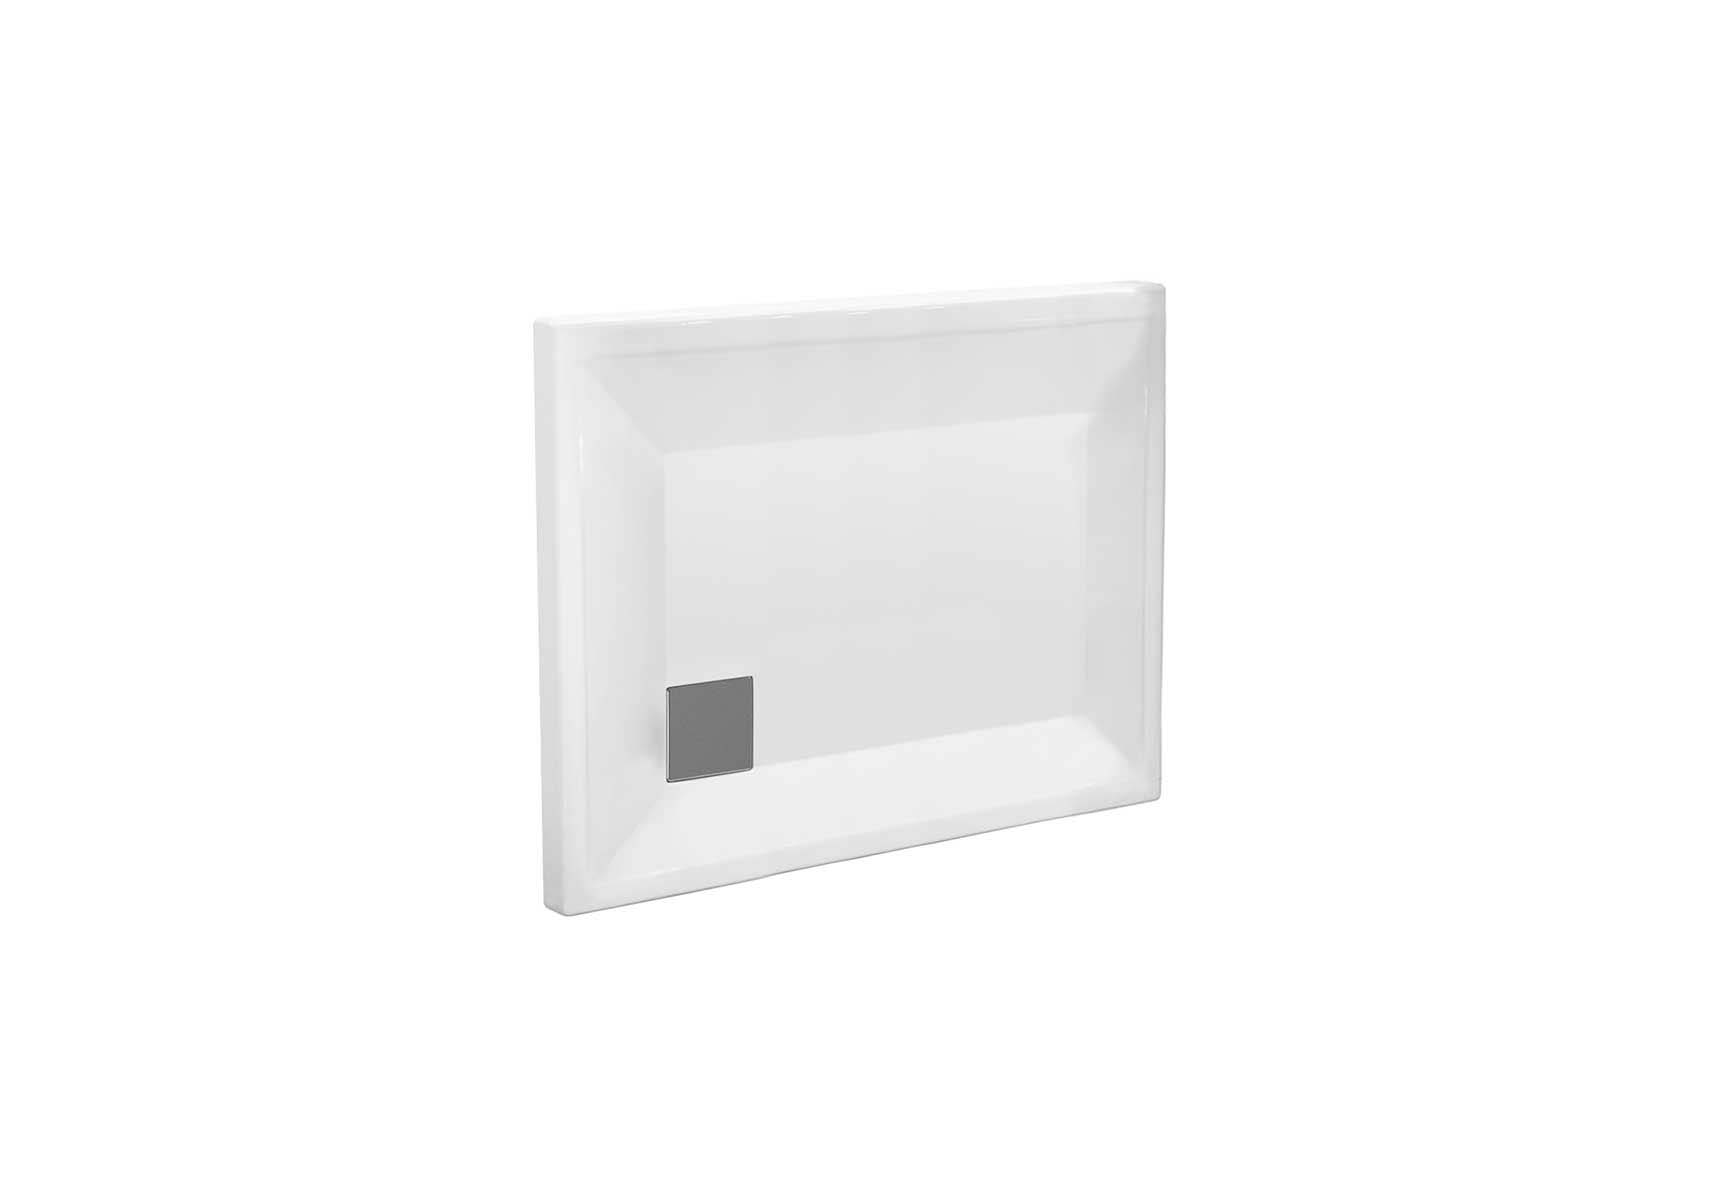 T90 110x90 Rectangular Monoflat Shower Tray